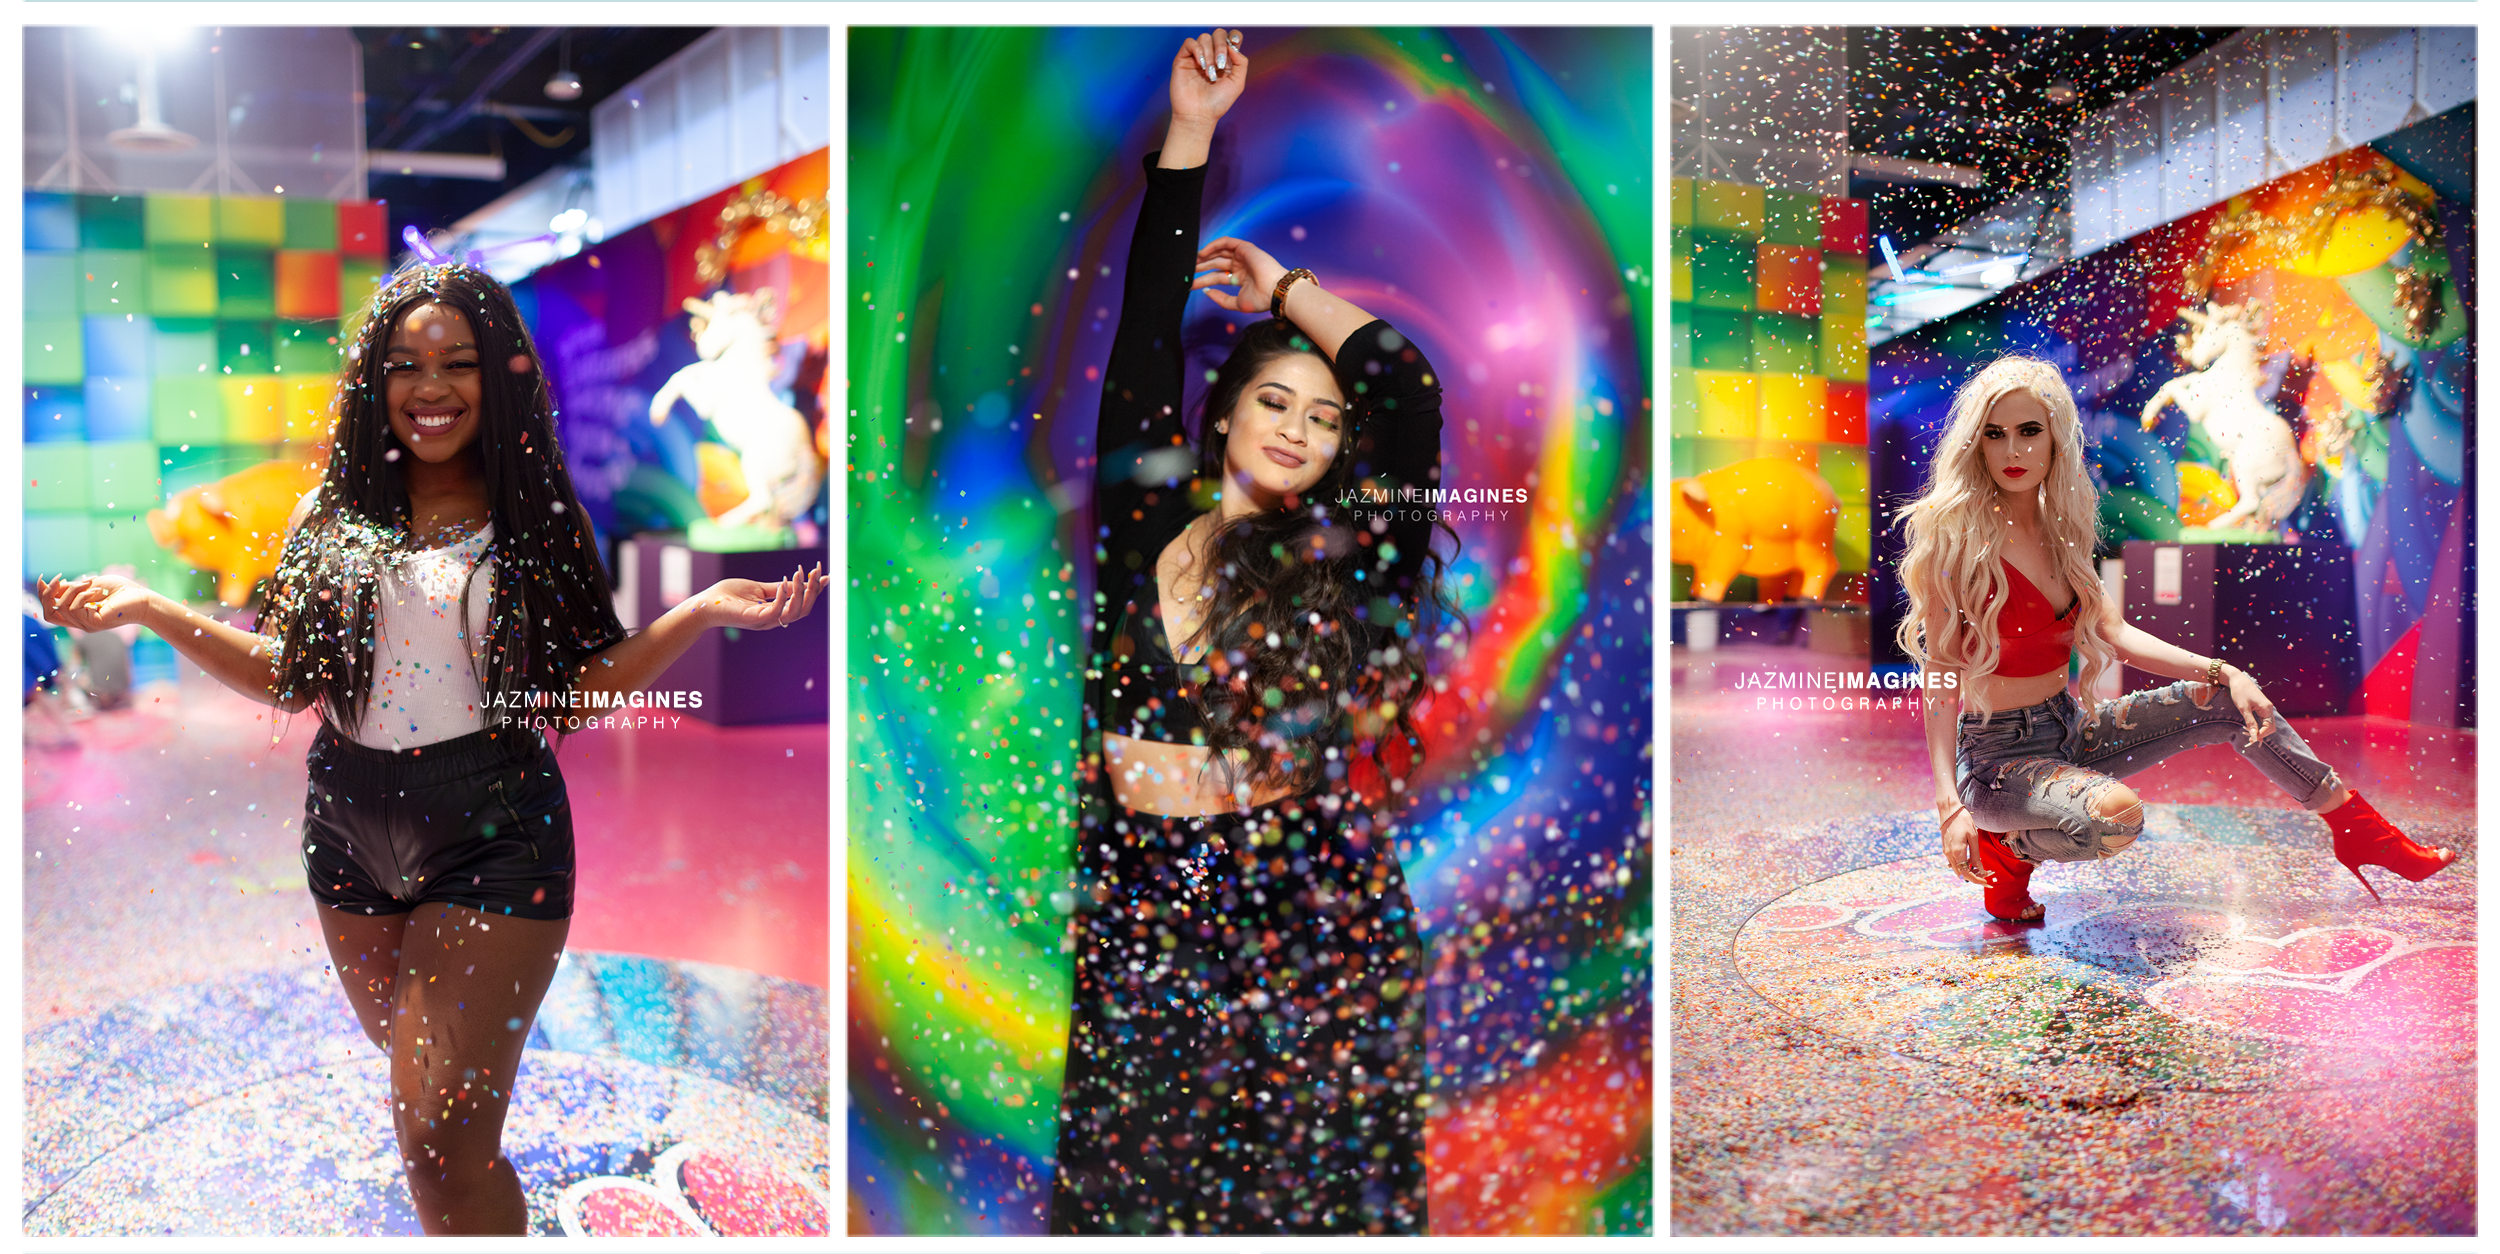 Candytopia_Dallas_Confetti_Room_Jazmine_Imagines_Photography.png